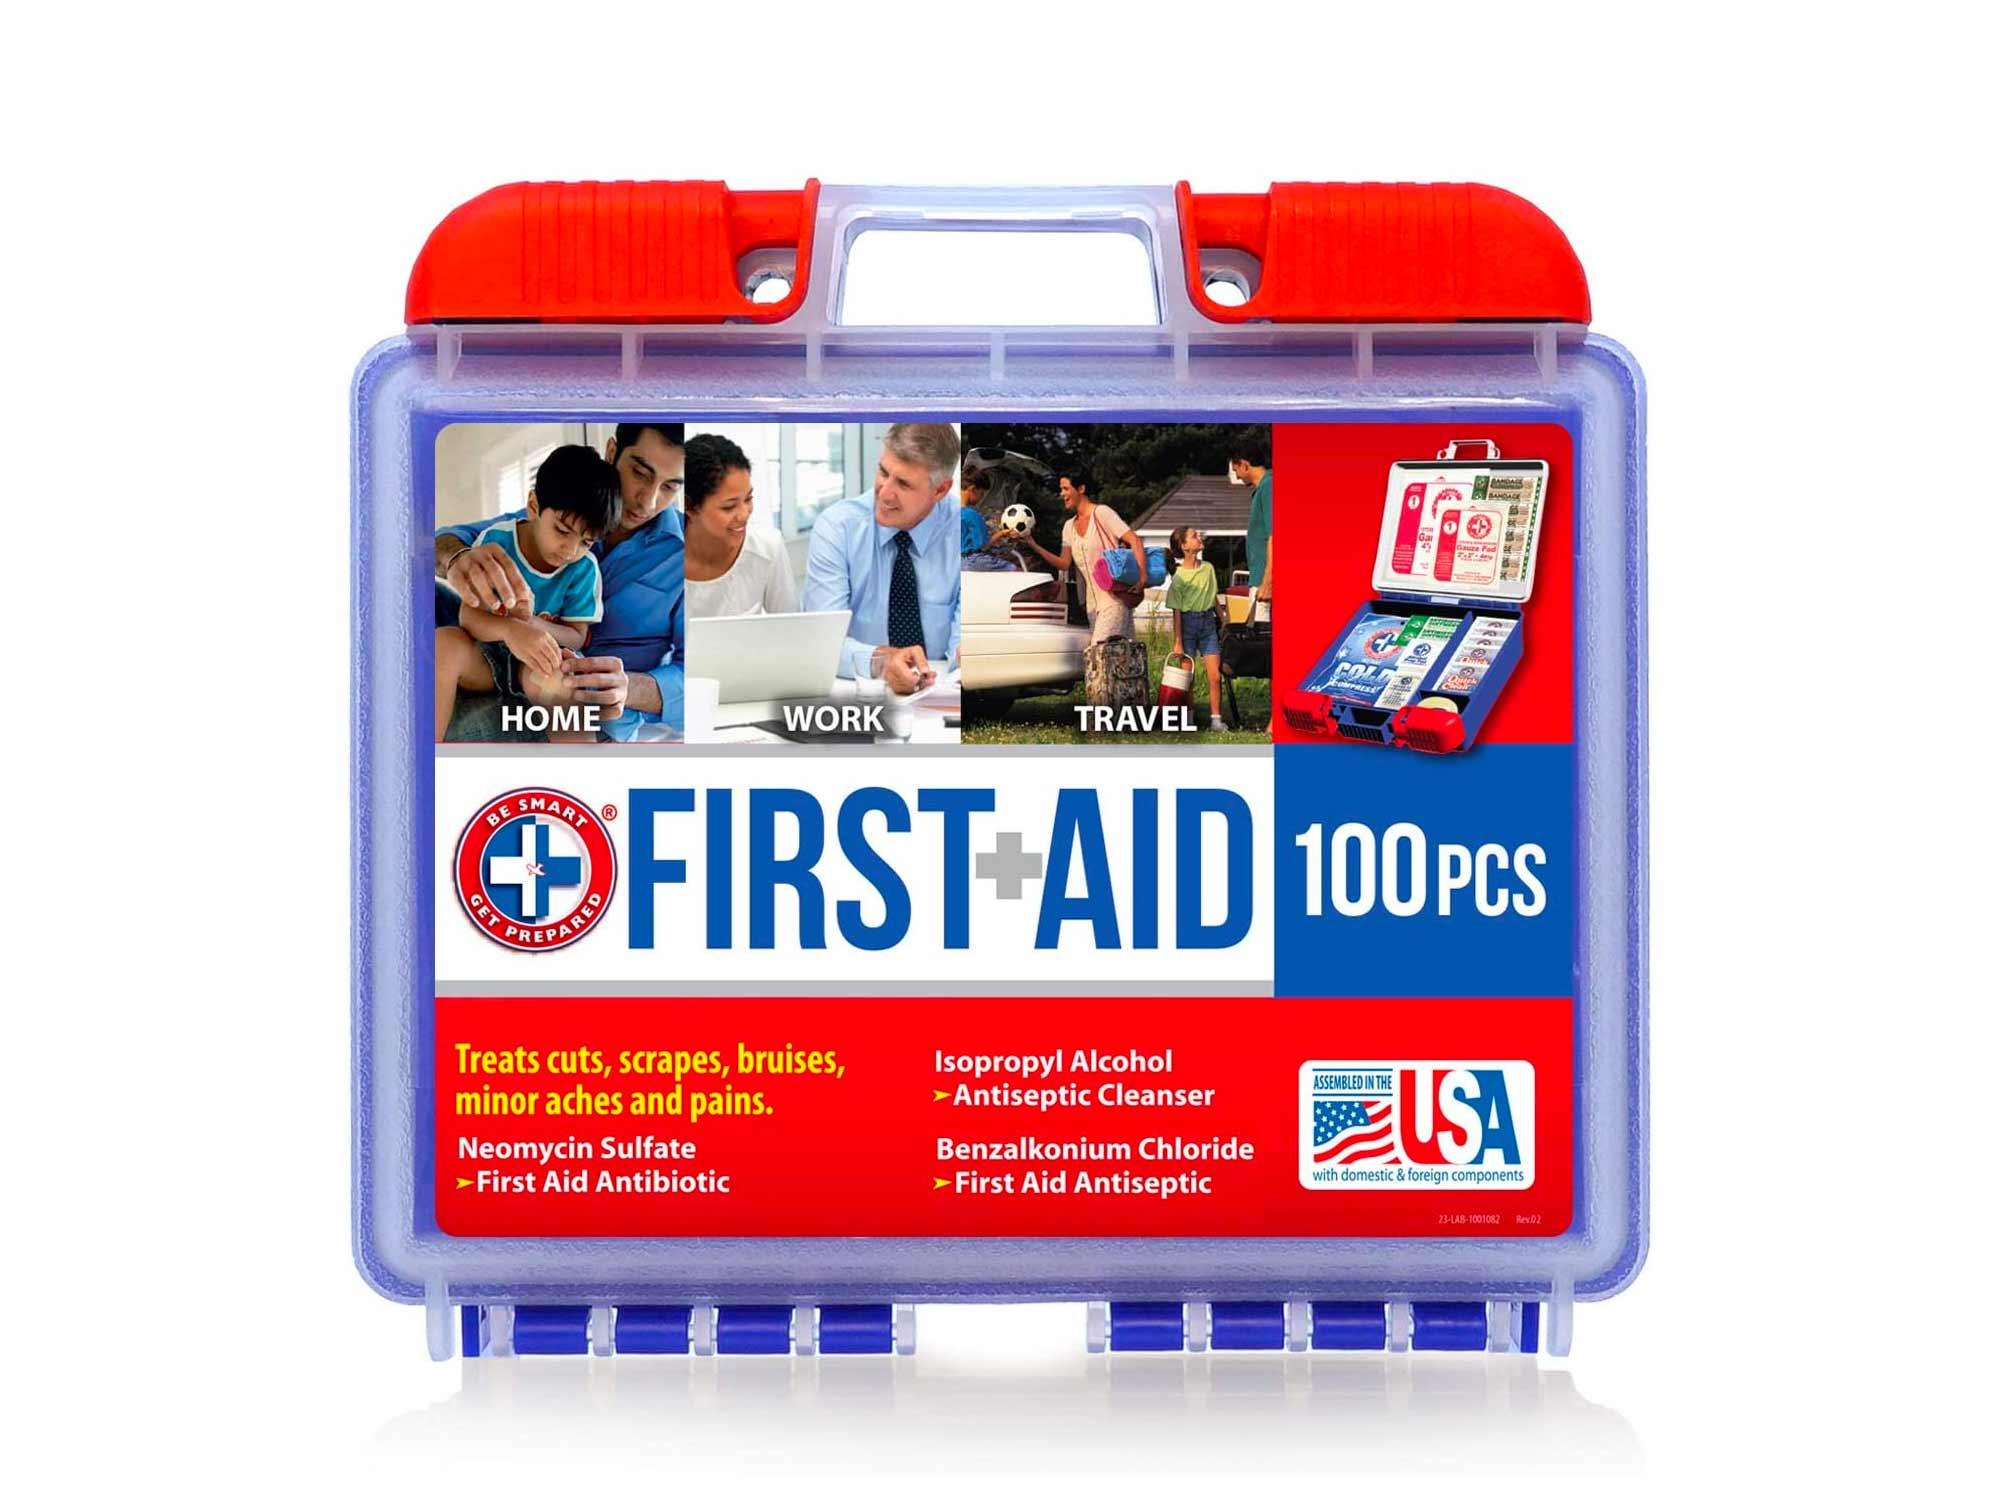 Be Smart Get Prepared 100Piece First Aid Kit, Clean, Treat & Protect Most Injuries With The Kit that is great for Any Home, Office, Vehicle, Camping & Sports. 0.71 Lb